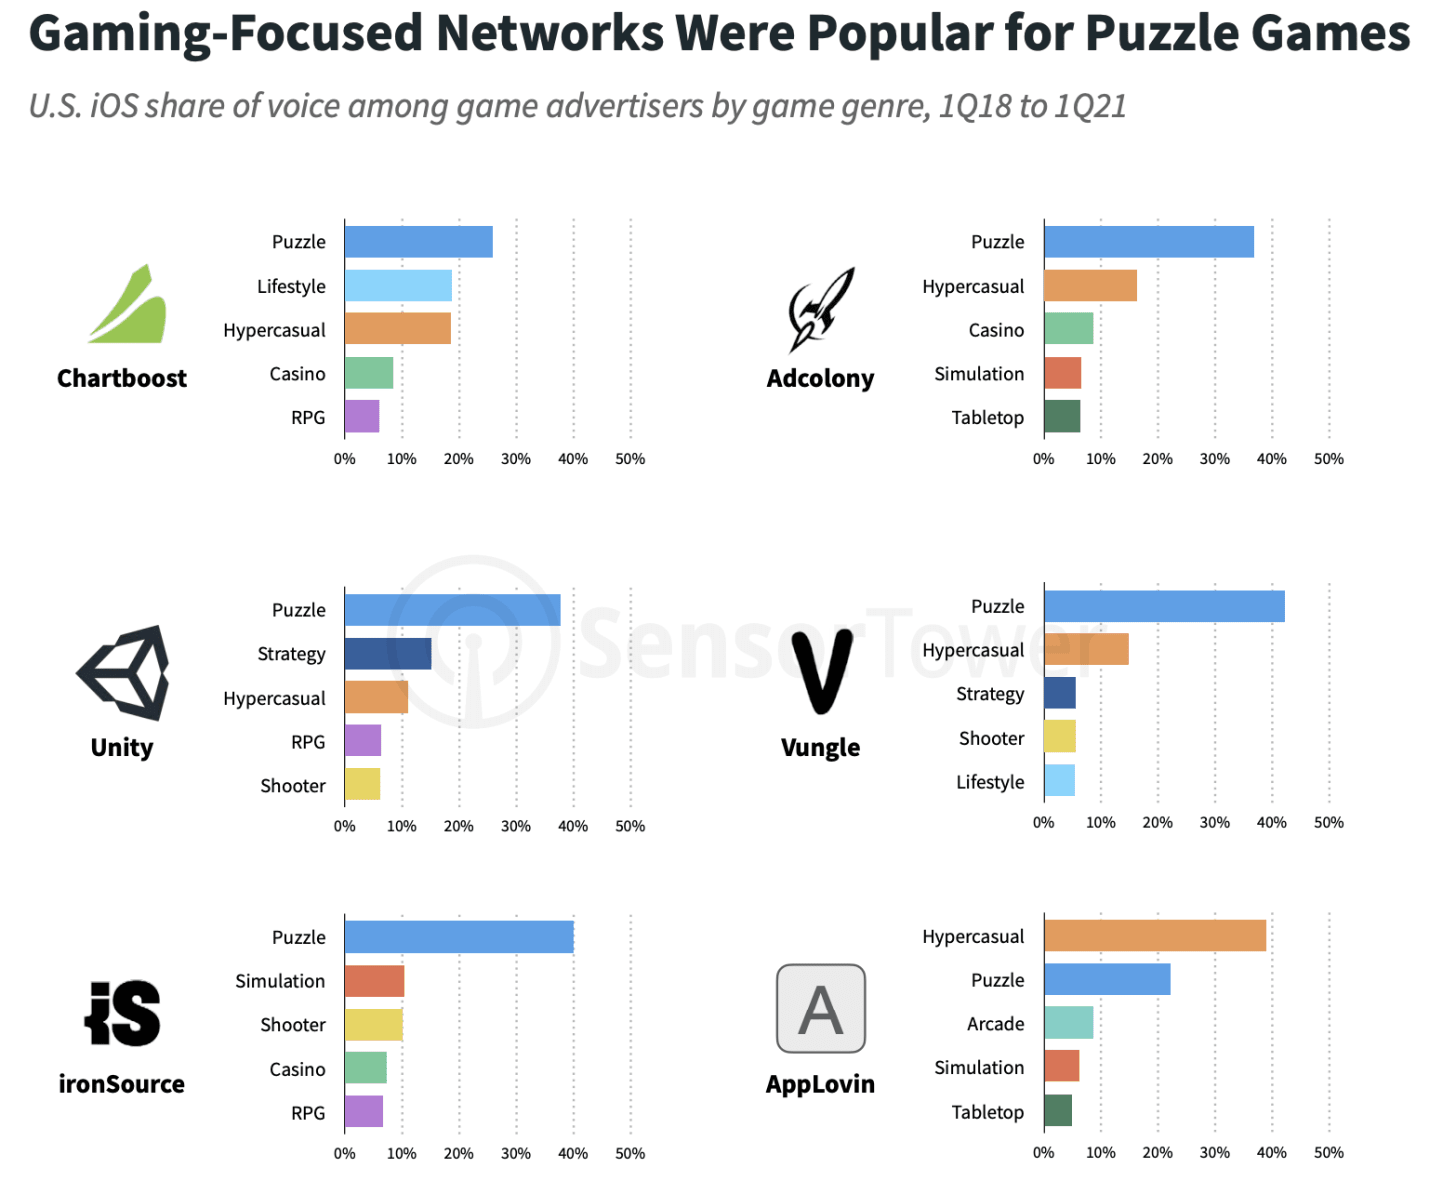 Ad networks puzzle games